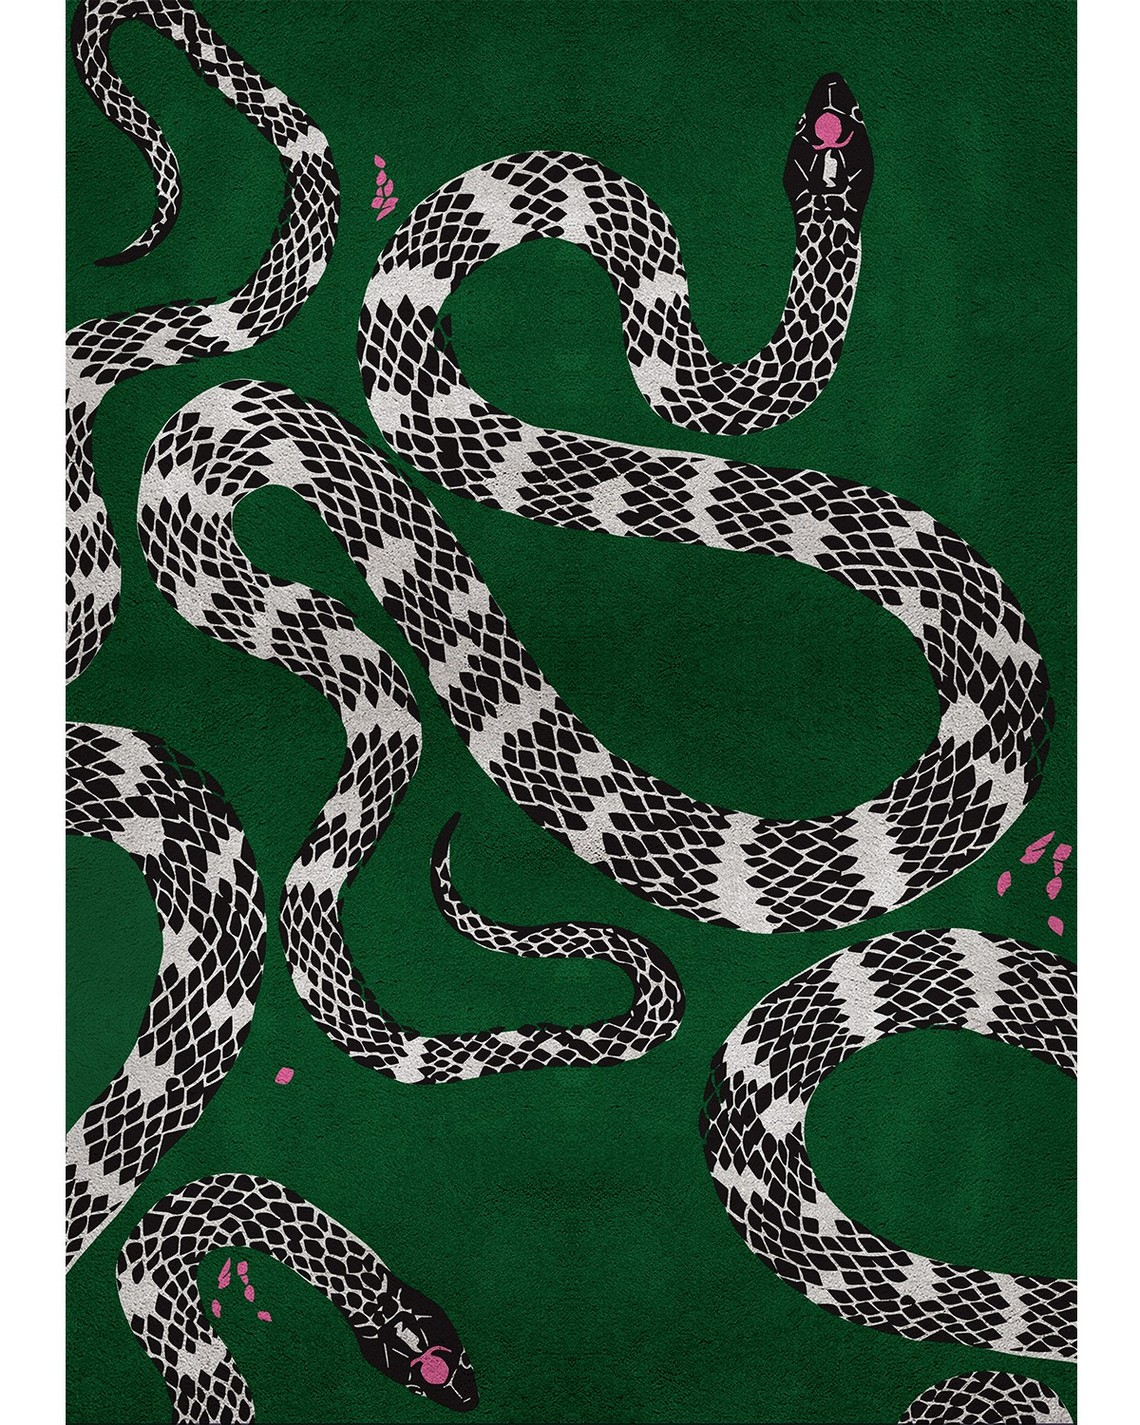 7 Colorful Dining Room Rugs You Will Covet dining room rugs 7 Colorful Dining Room Rugs You Will Covet snake